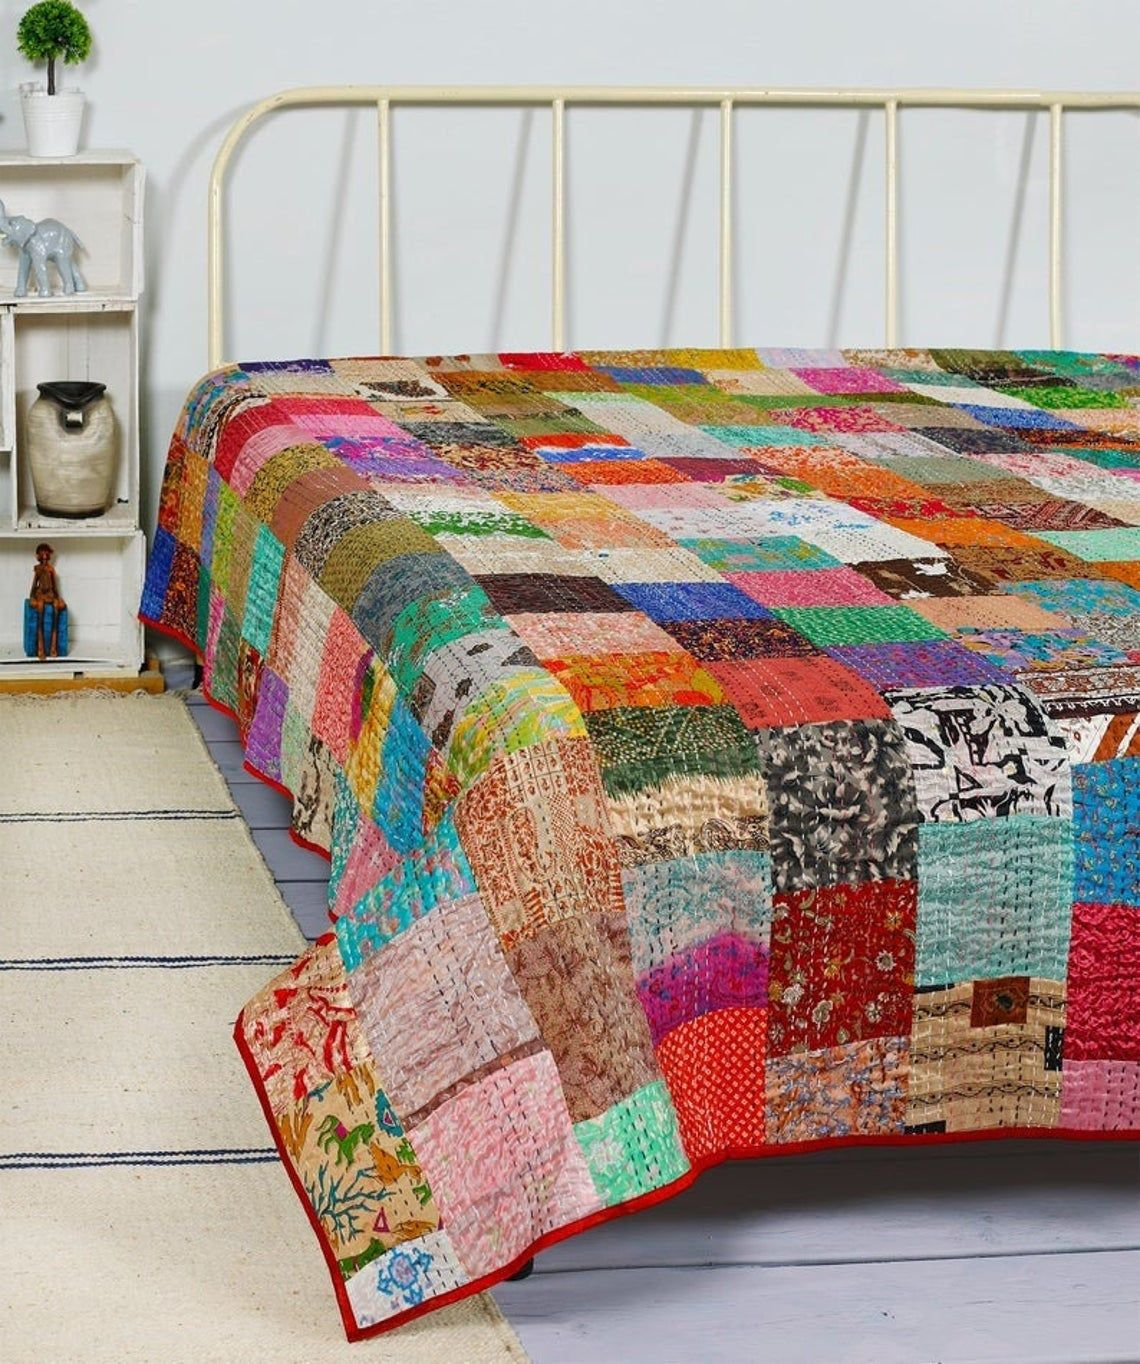 5tvuysdu84w5om Quilts for sale king size